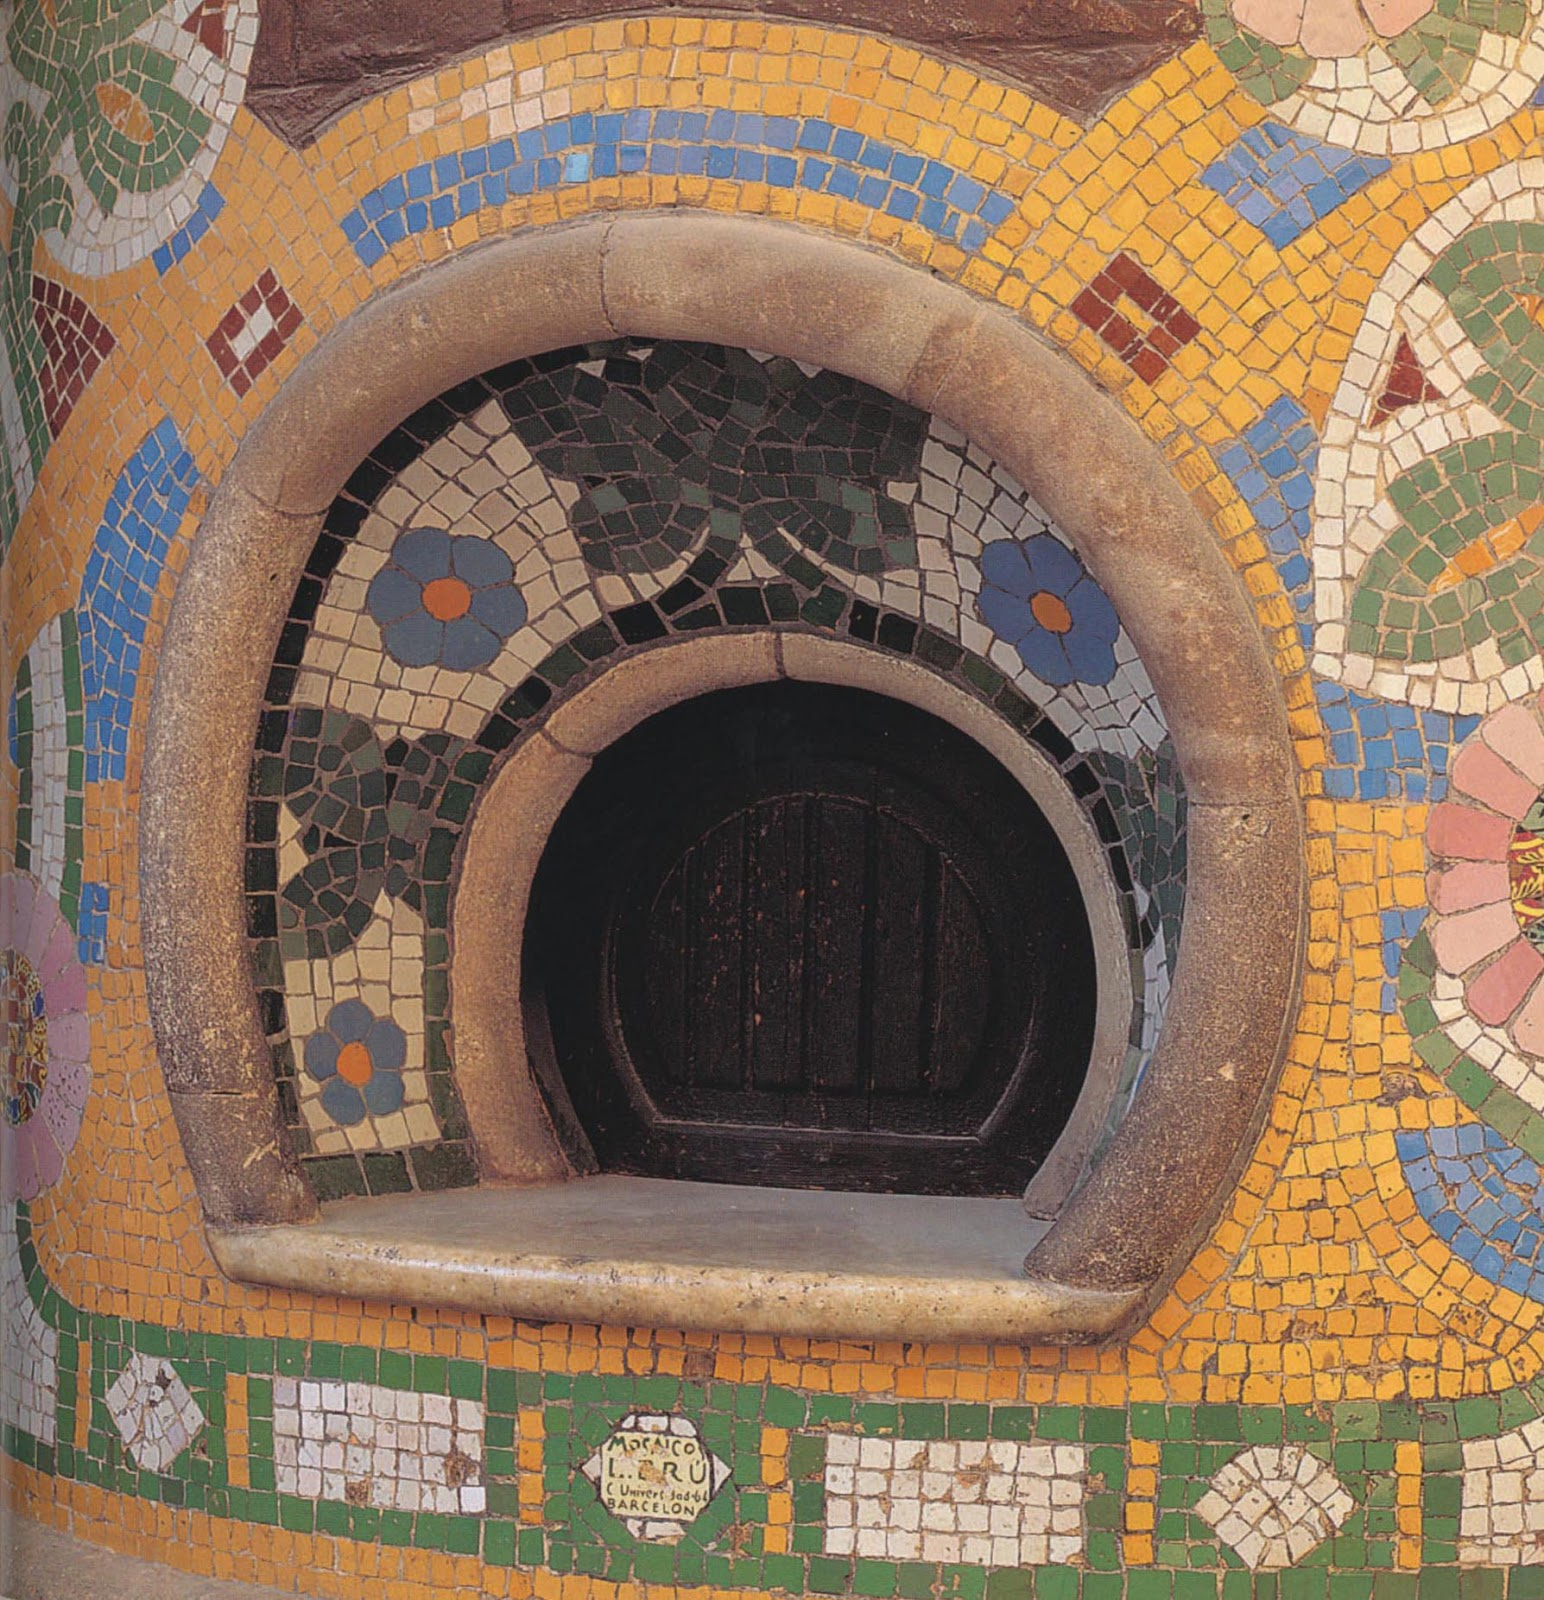 Antoni gaudi barcelona and the modern mosaic for Modernisme architecture definition